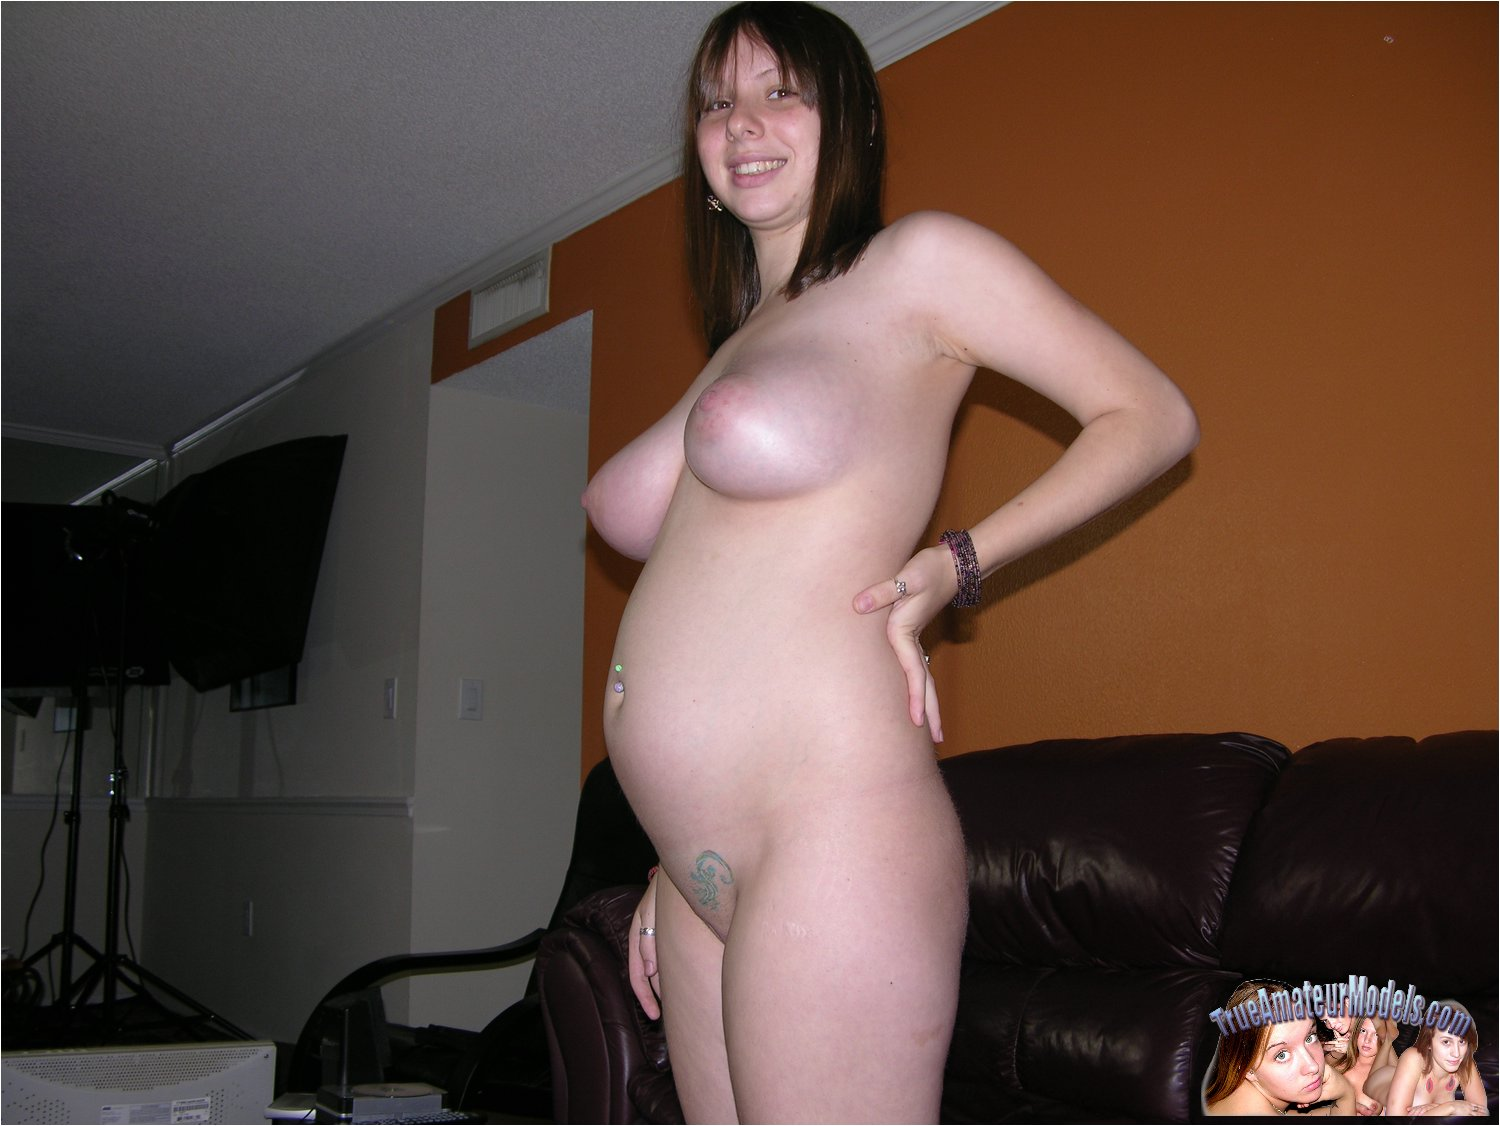 Beautiful naked pregnant girls with tiny pussy, inflatable dildo butt girl